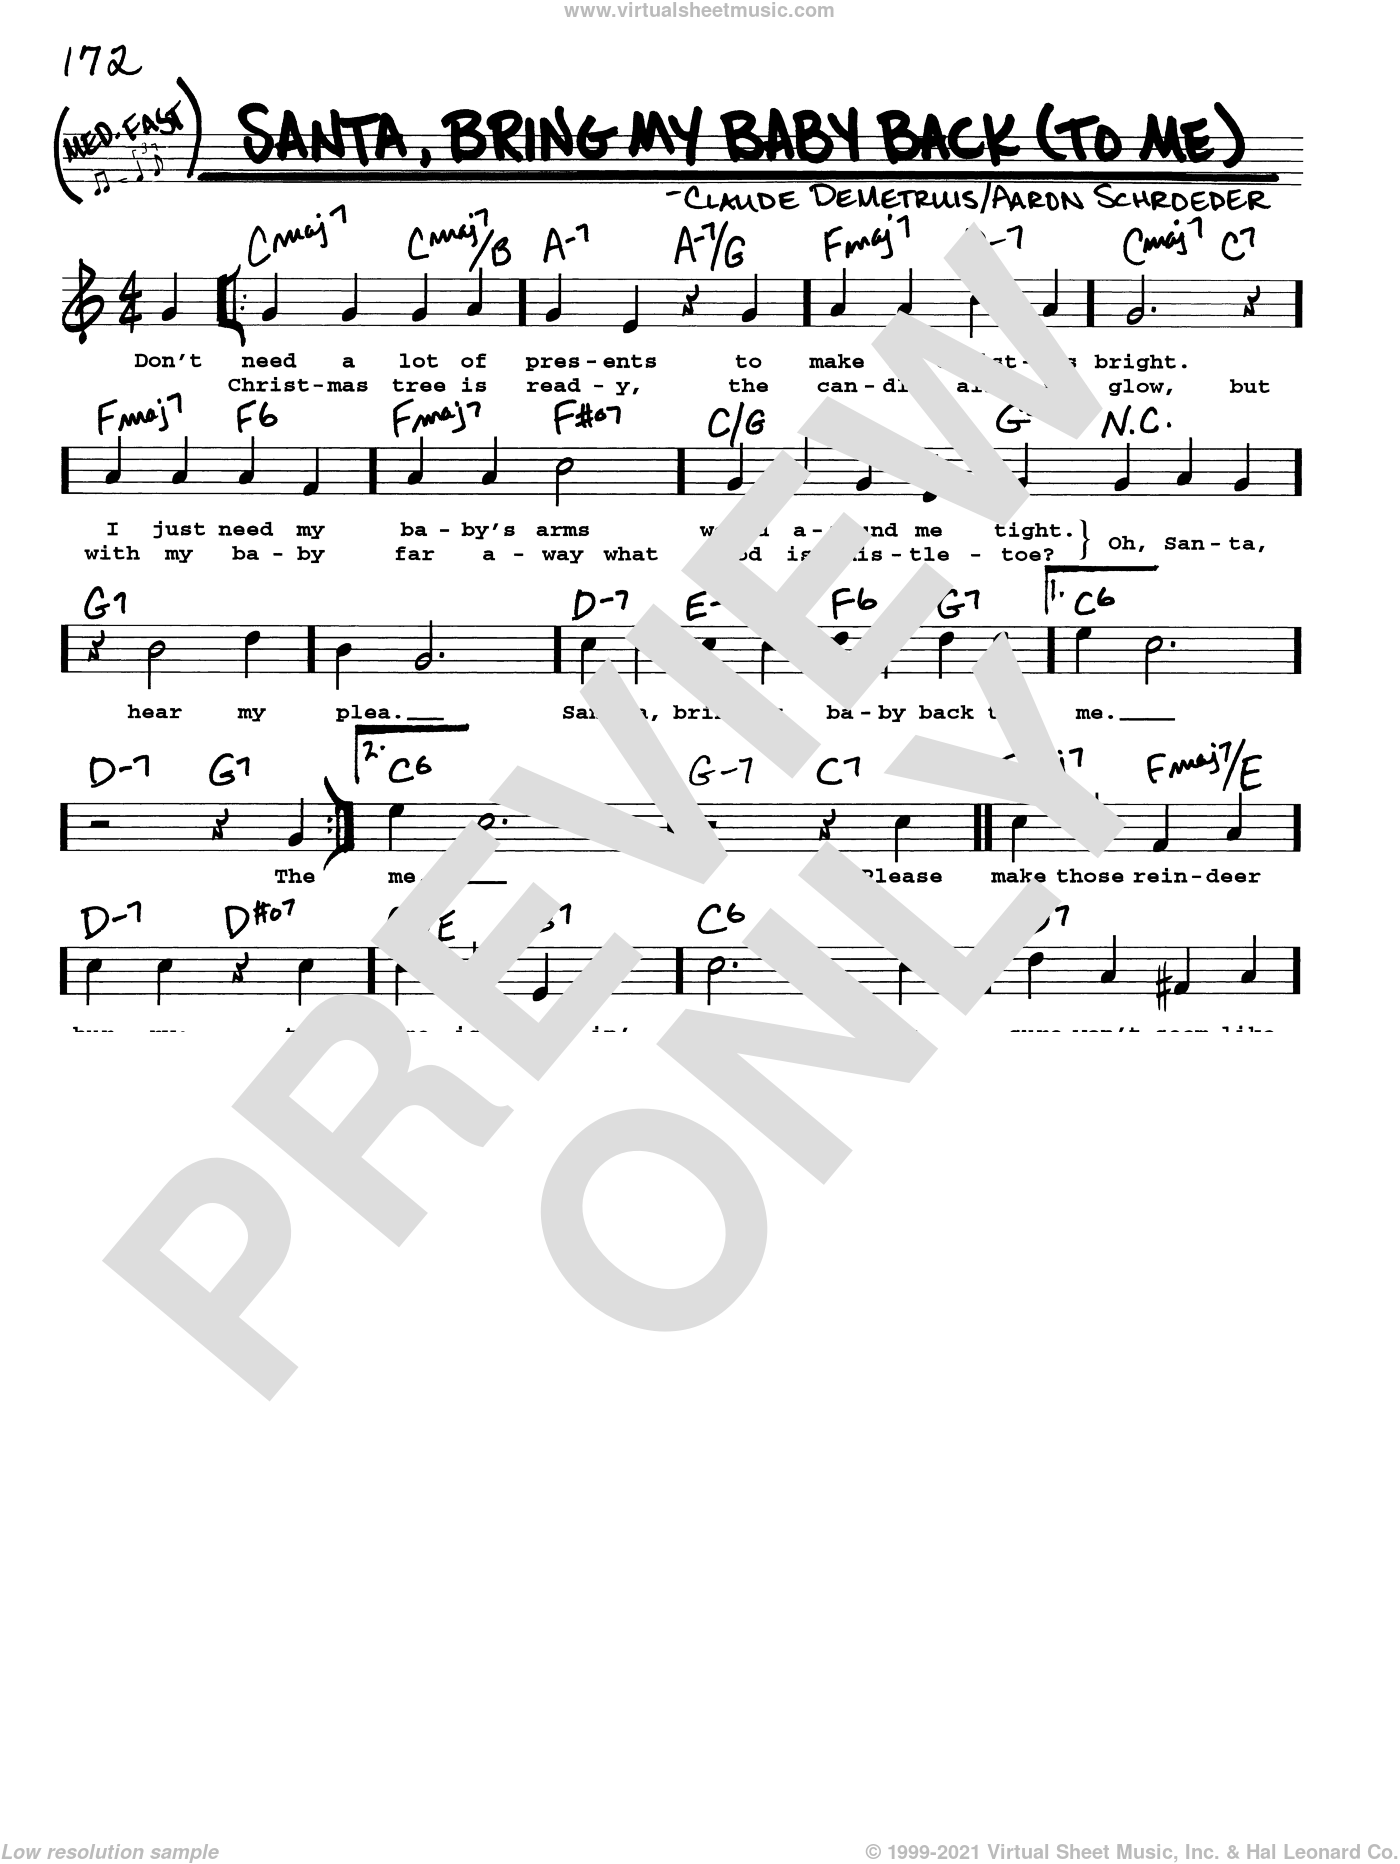 Santa, Bring My Baby Back (To Me) sheet music for voice and other instruments (real book with lyrics) by Elvis Presley, Aaron Schroeder and Claude DeMetruis, intermediate skill level